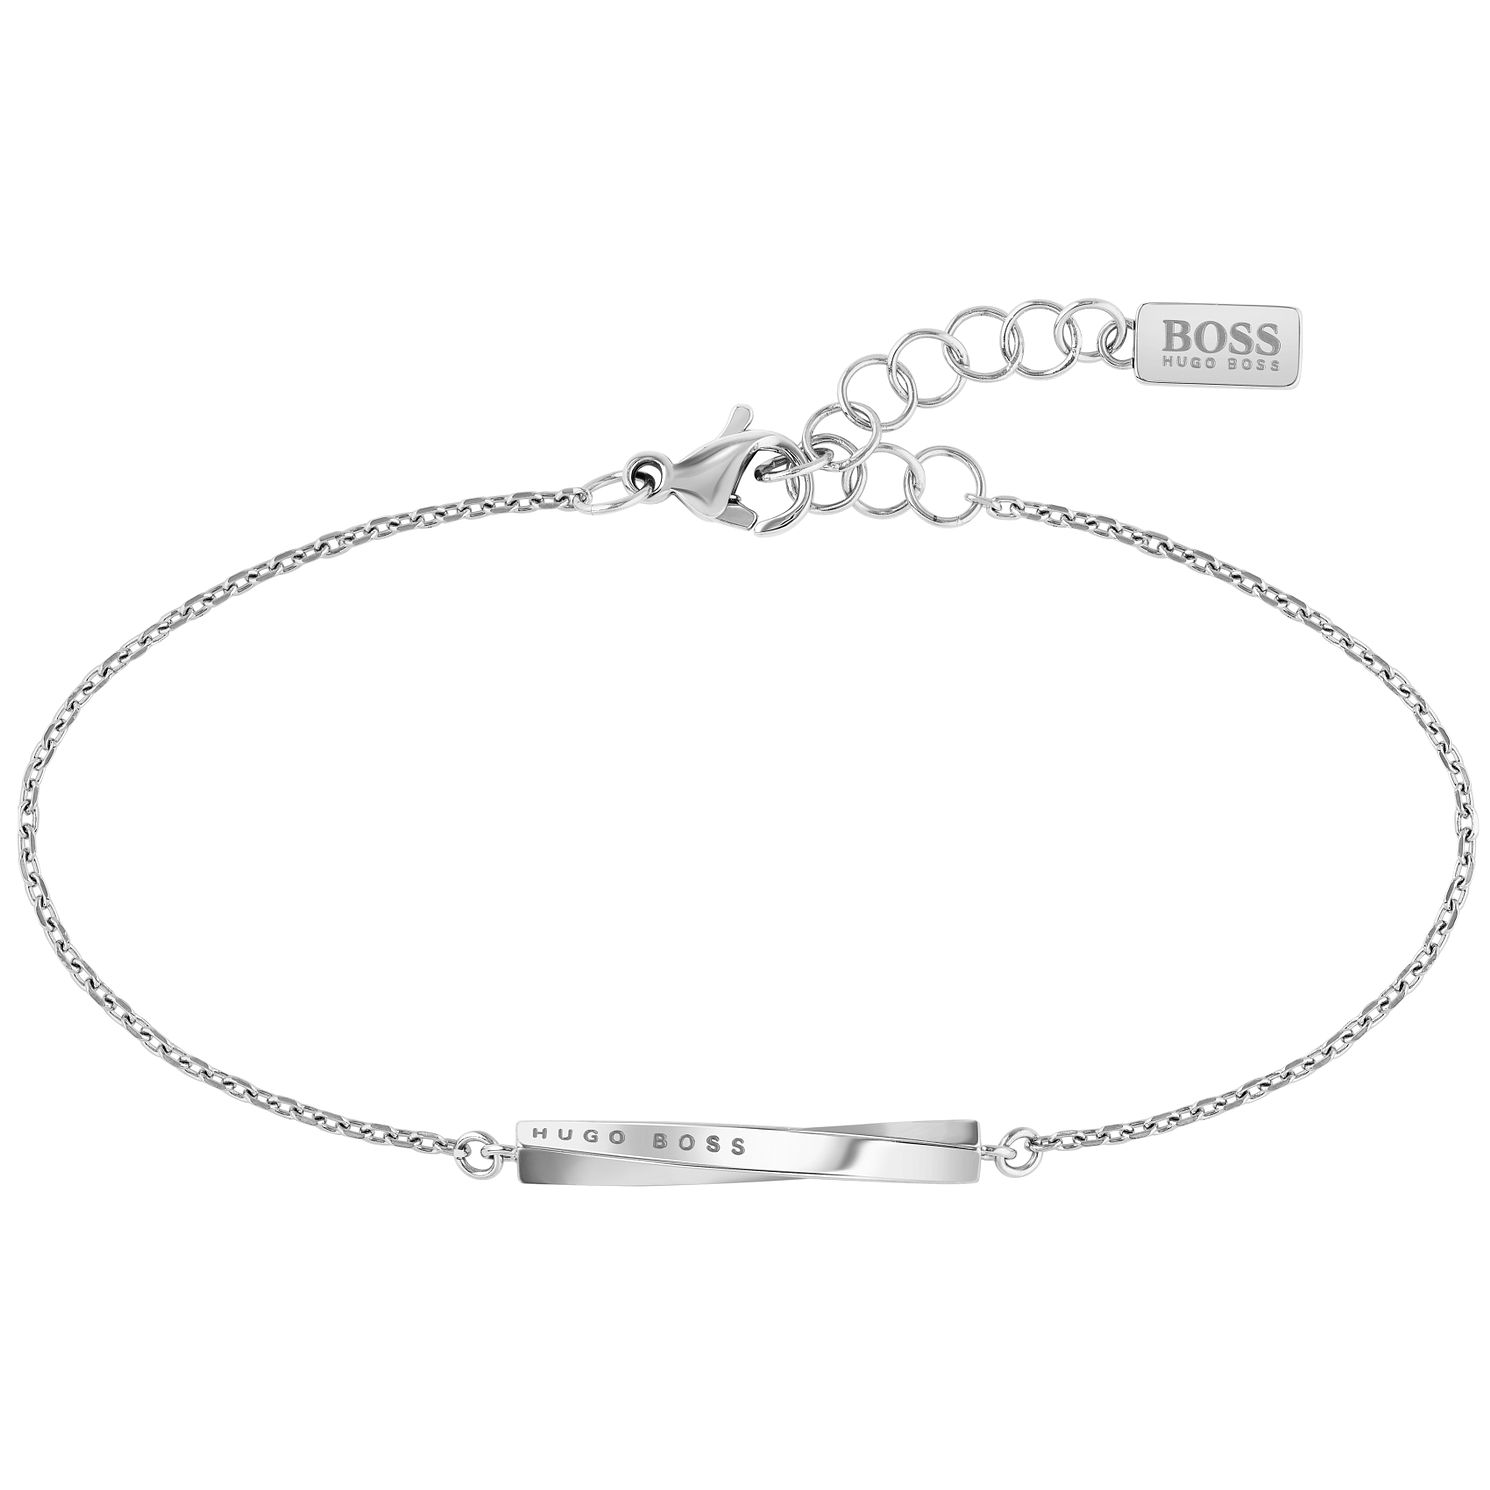 BOSS Signature Ladies'  Stainless Steel Bracelet - Product number 5007631